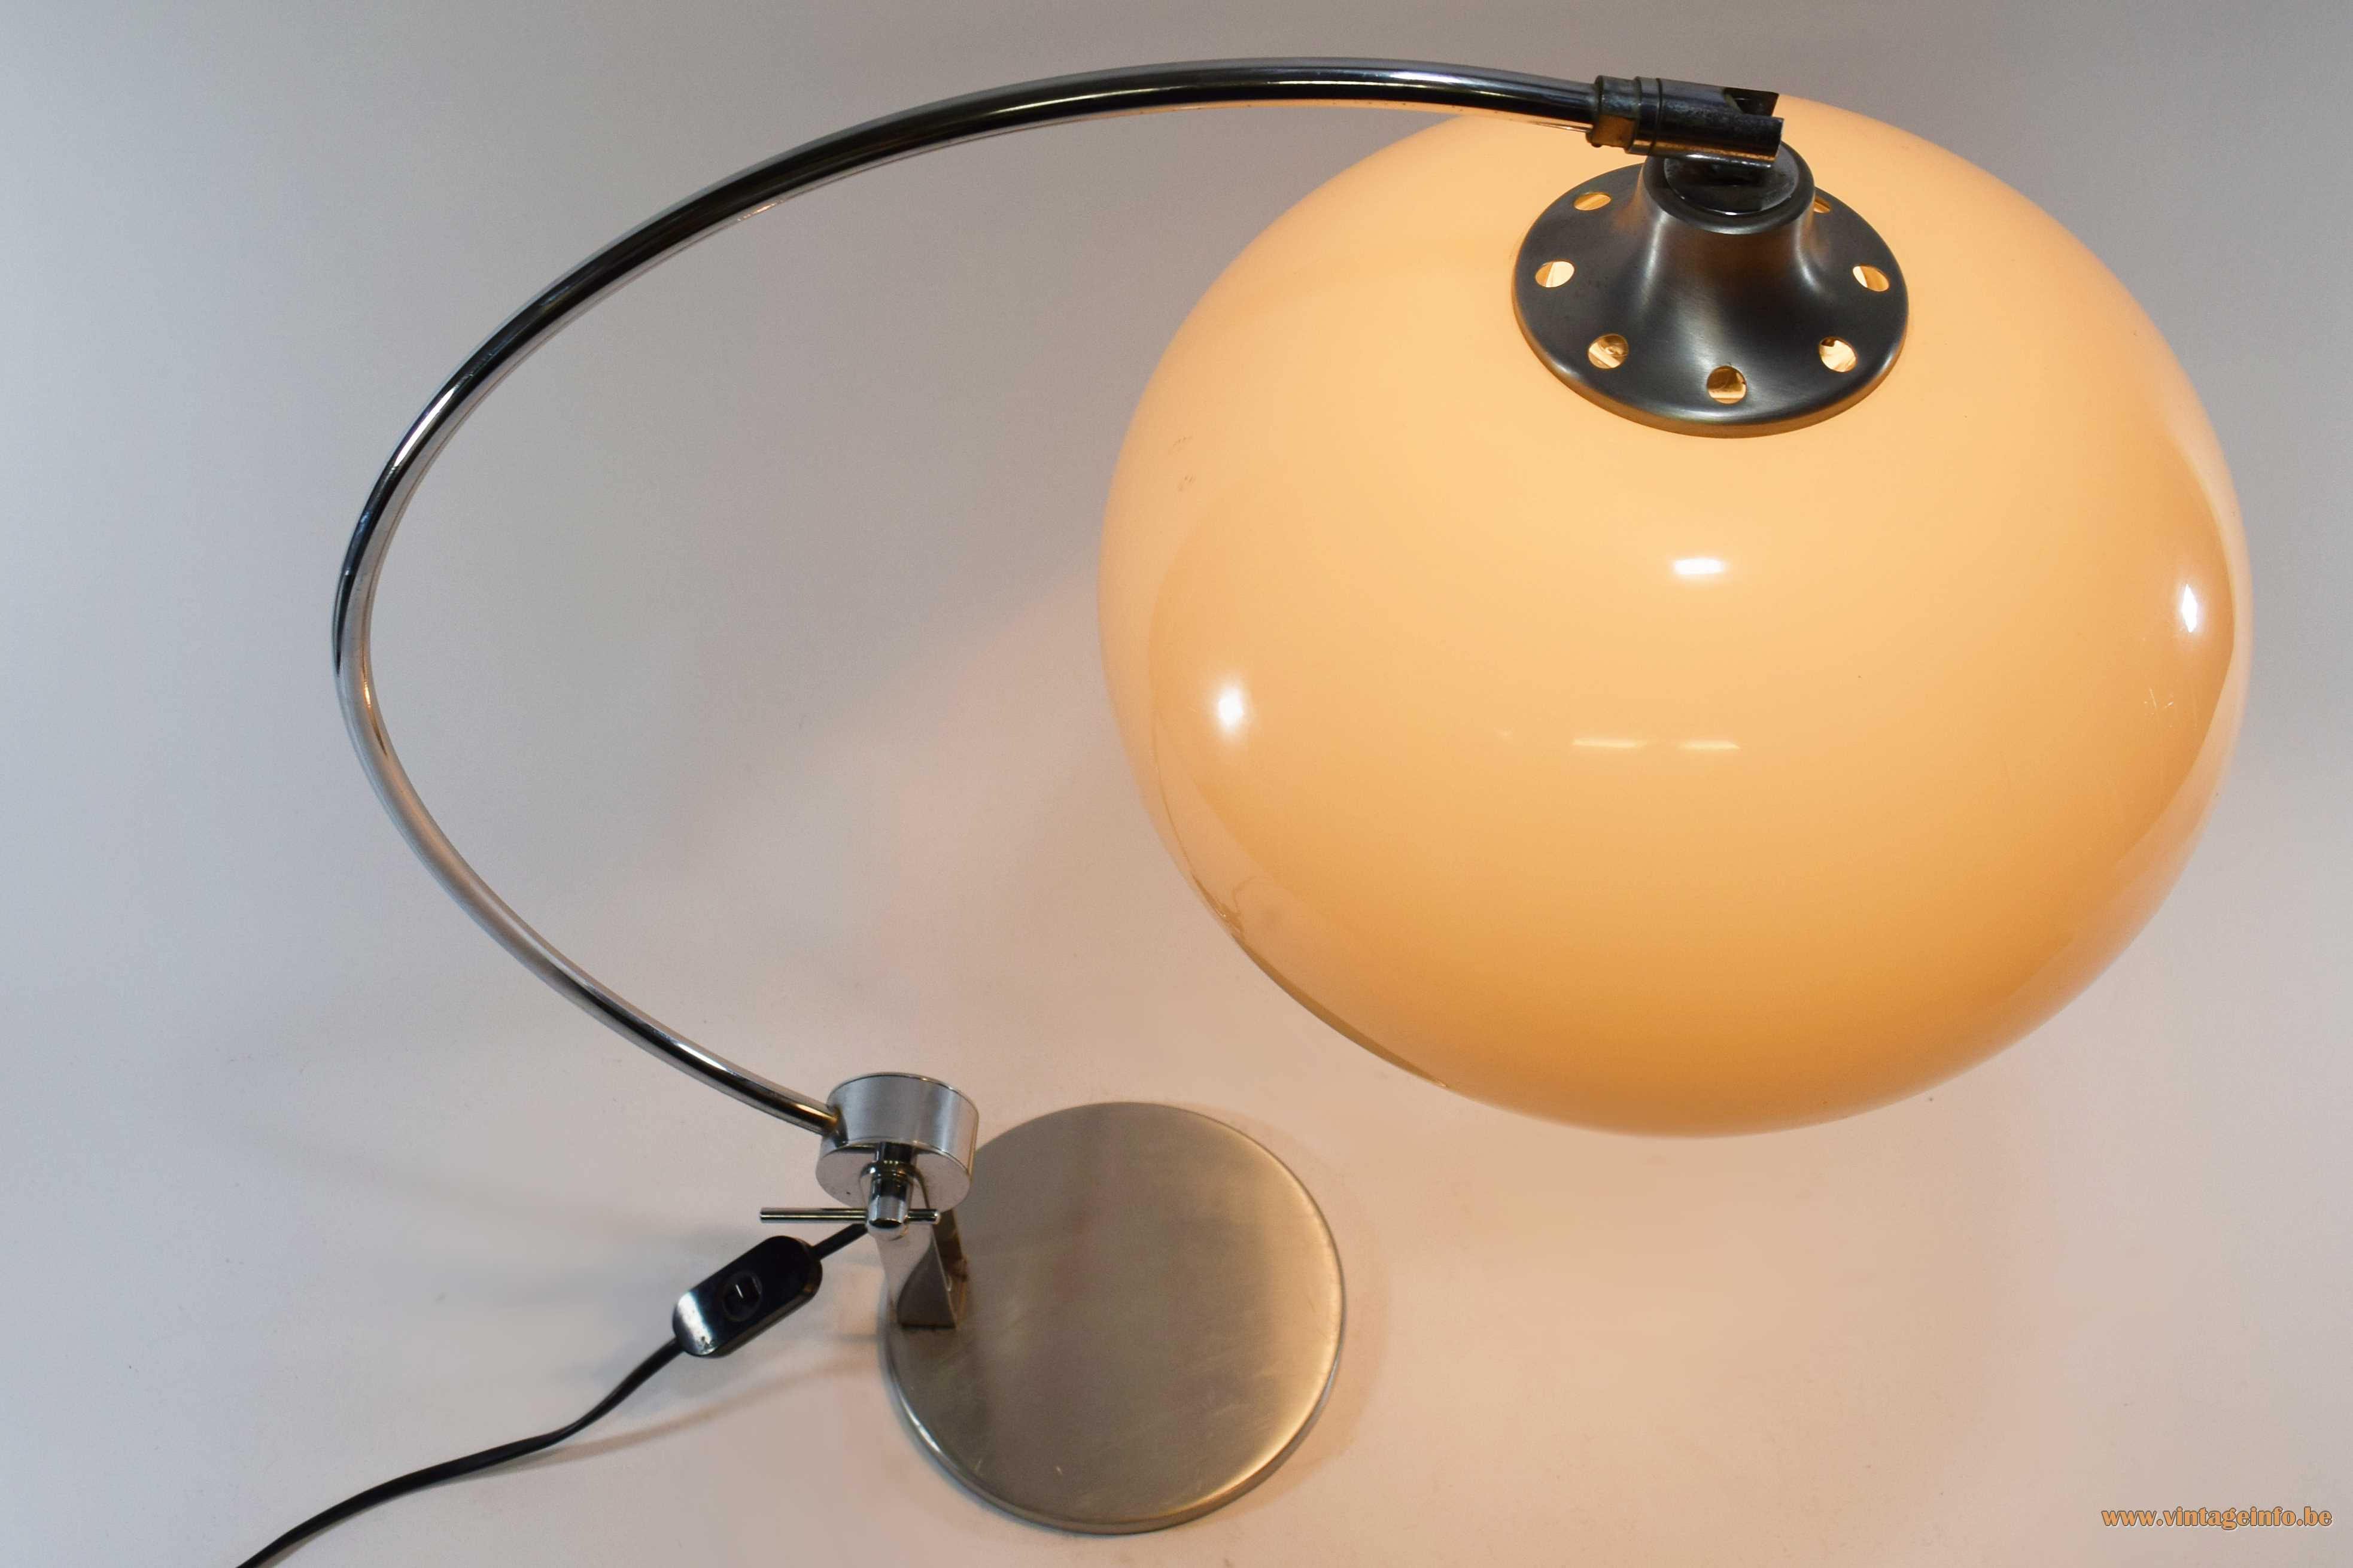 Chrome arc table lamp flat round base curved rod brown acrylic globe lampshade 1960s 1970s Massive